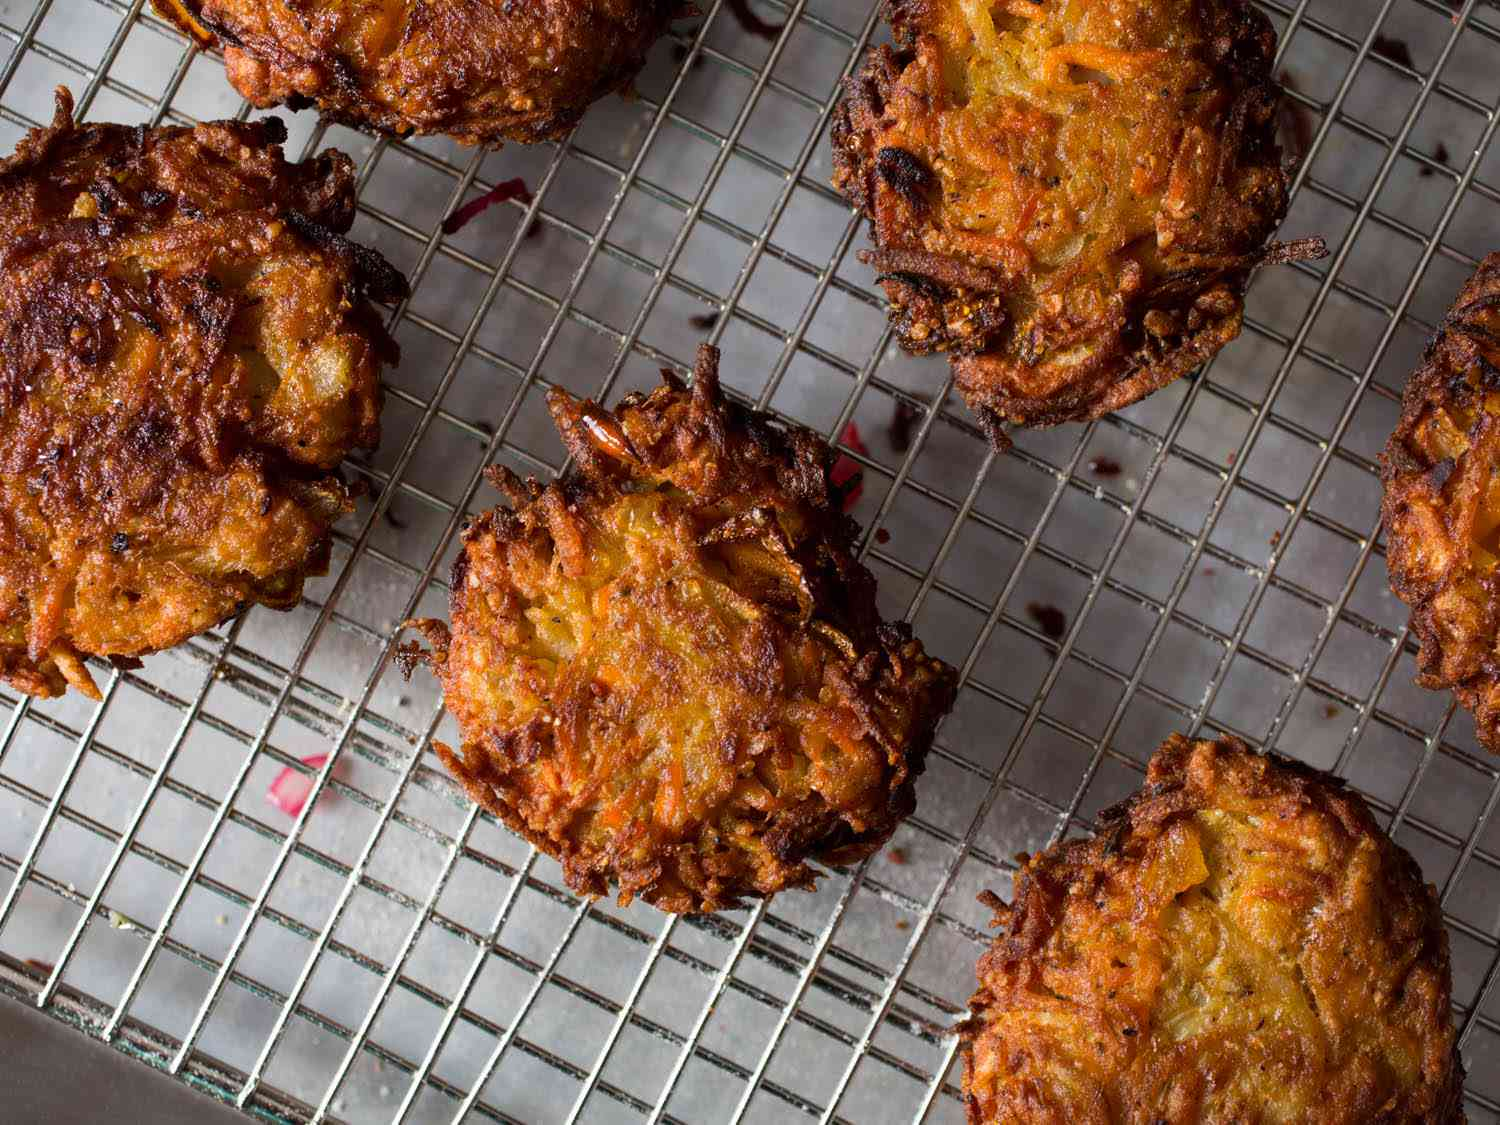 Fried sweet potato, squash, and carrot latkes resting on a wire rack